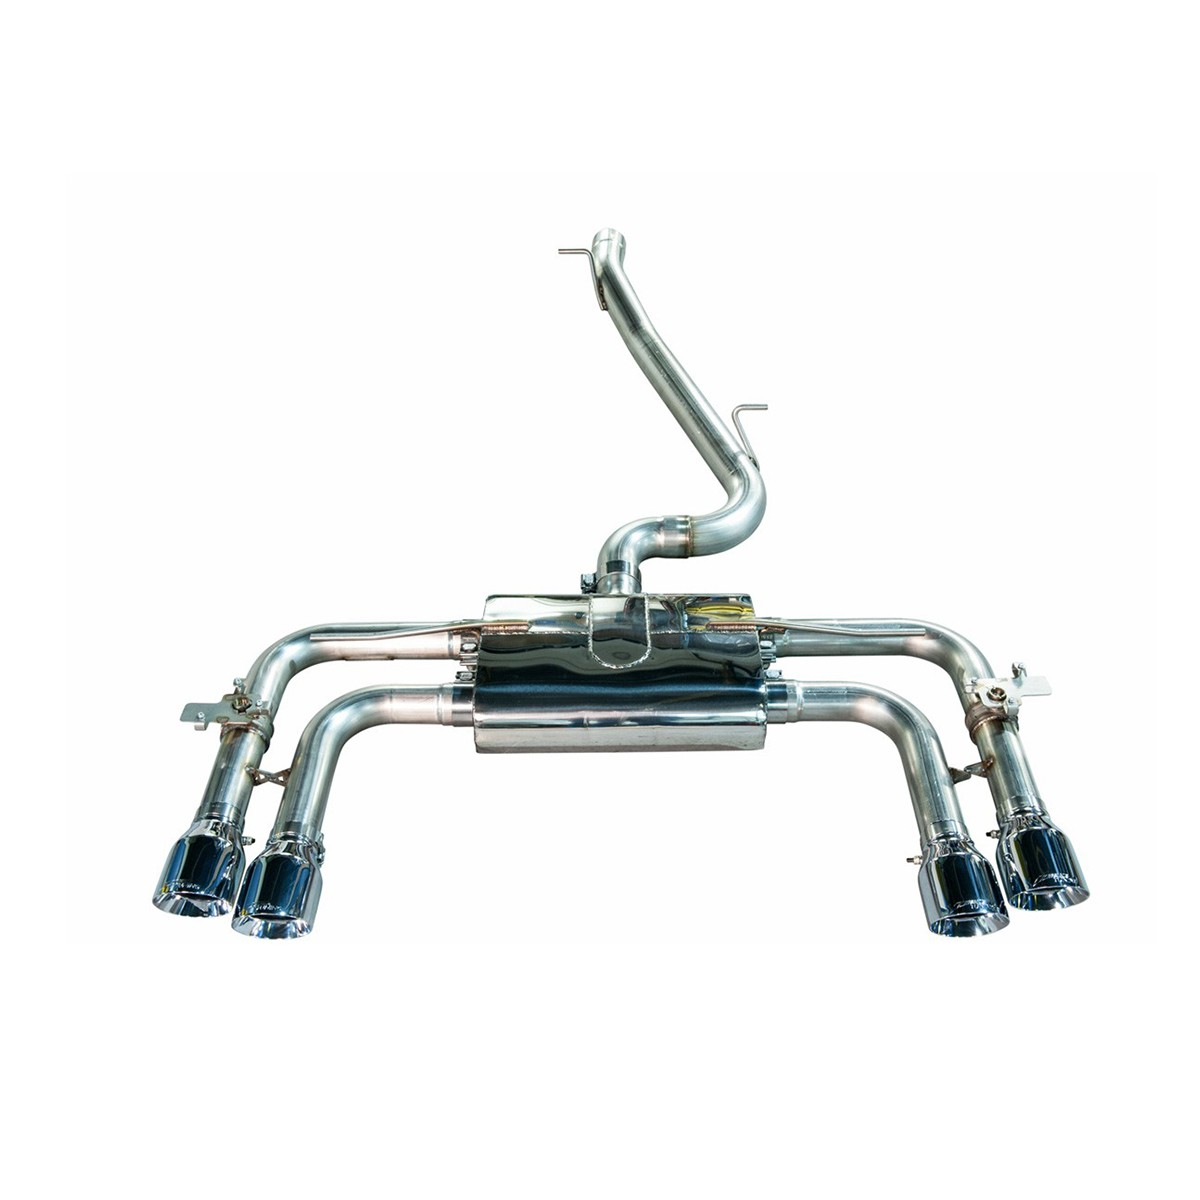 awe tuning mqb 8v audi s3 switchpath performance cat back exhaust system